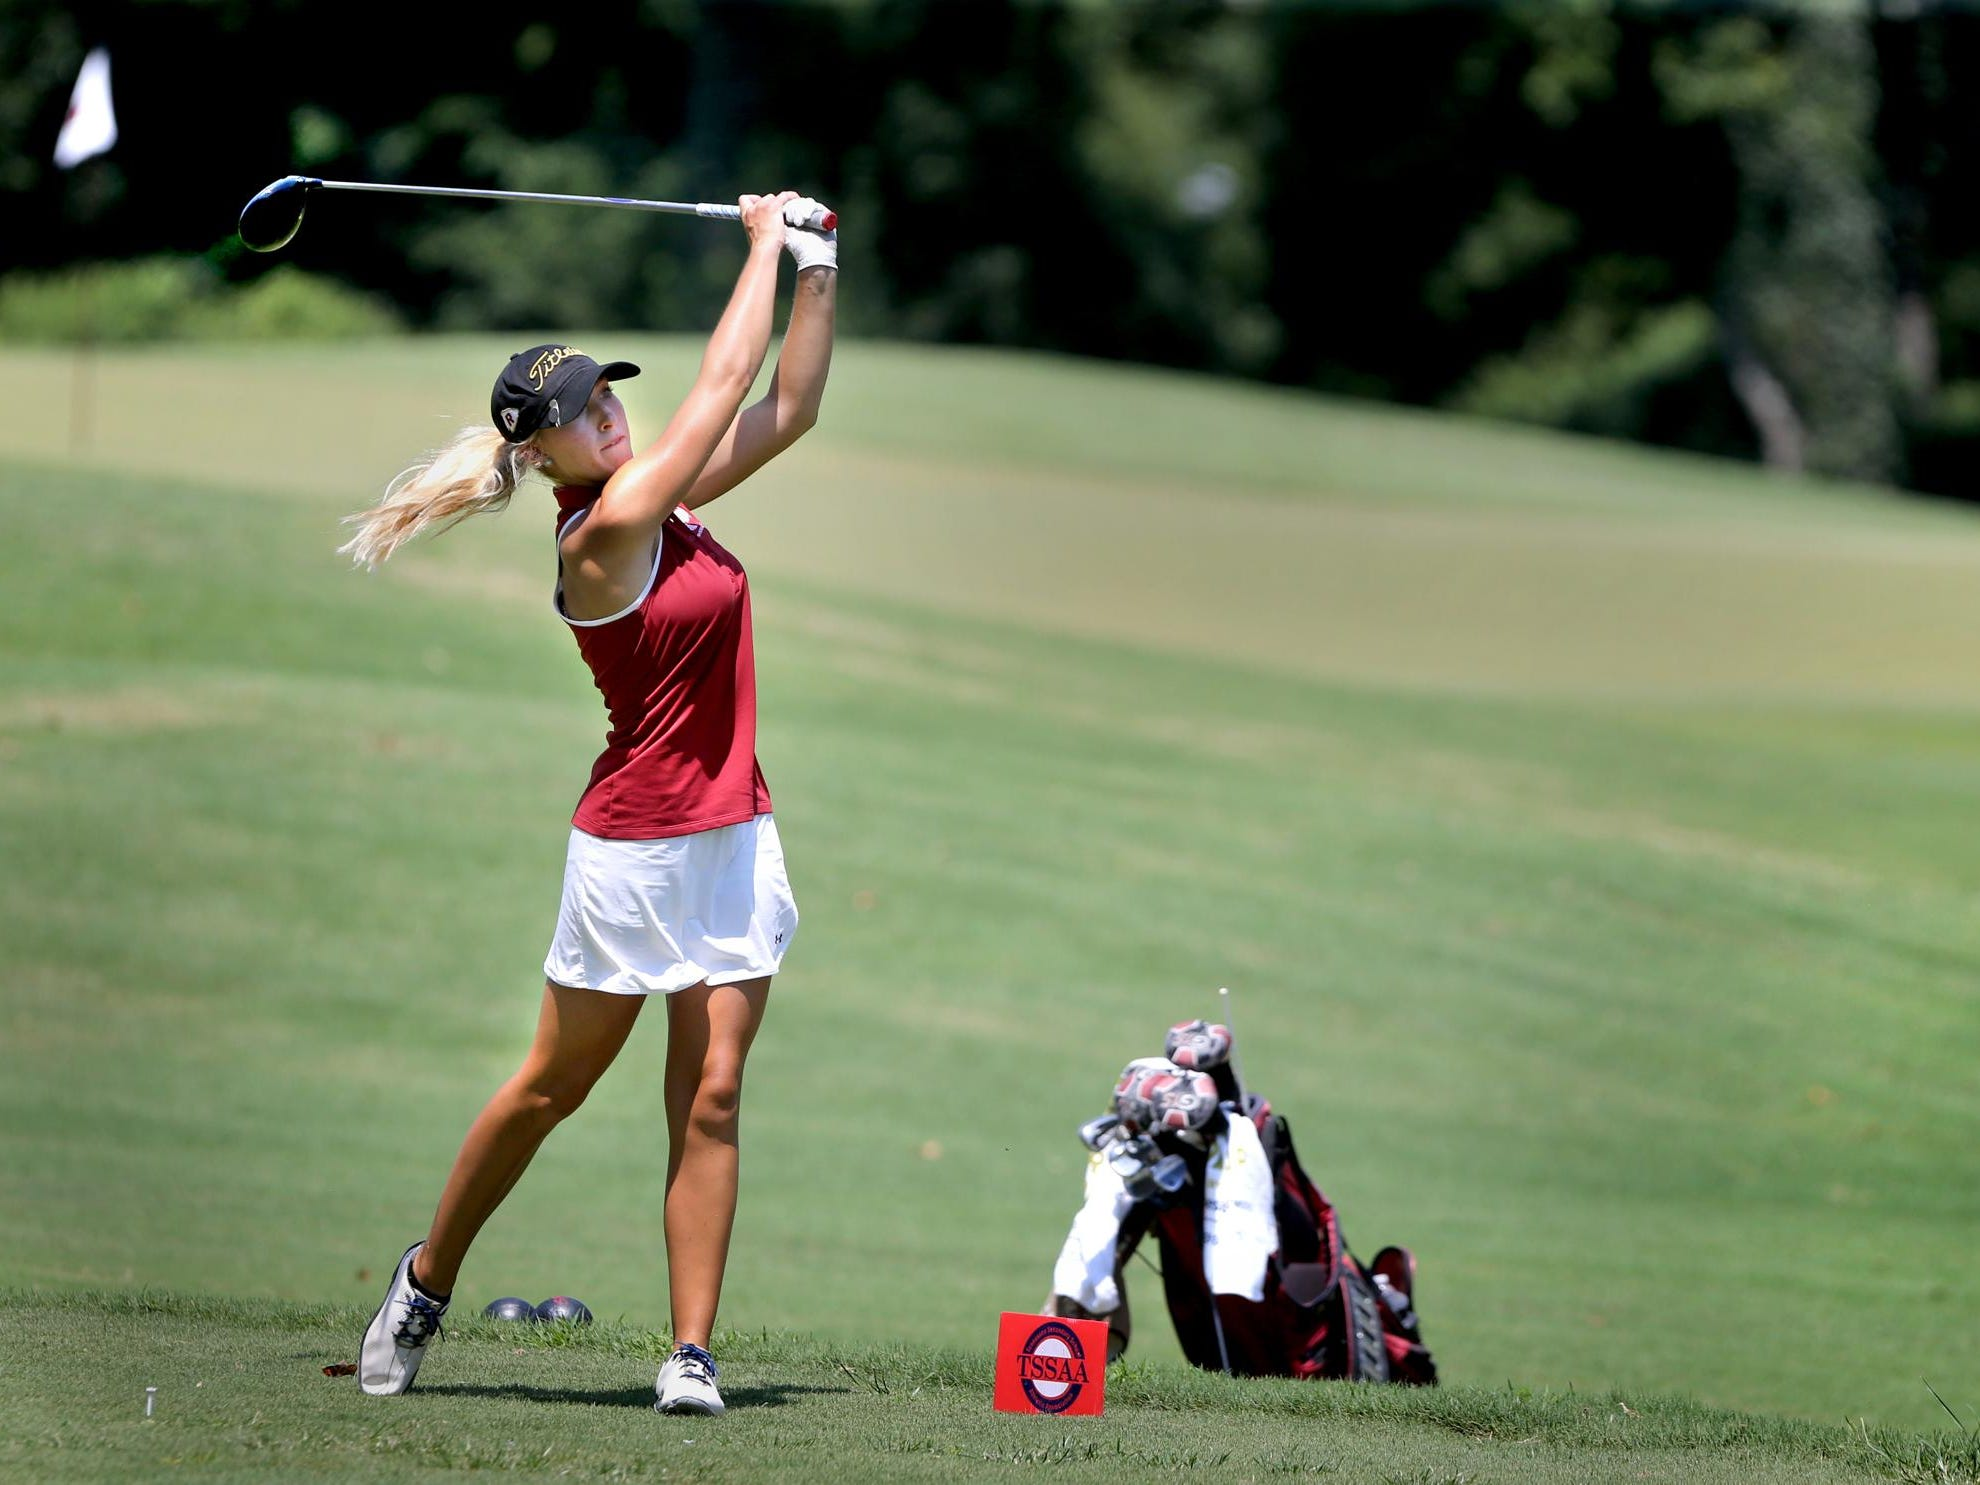 Riverdale's Reagan Kinnie watches her shot on the ninth hole at Stones River Country Club on Monday.